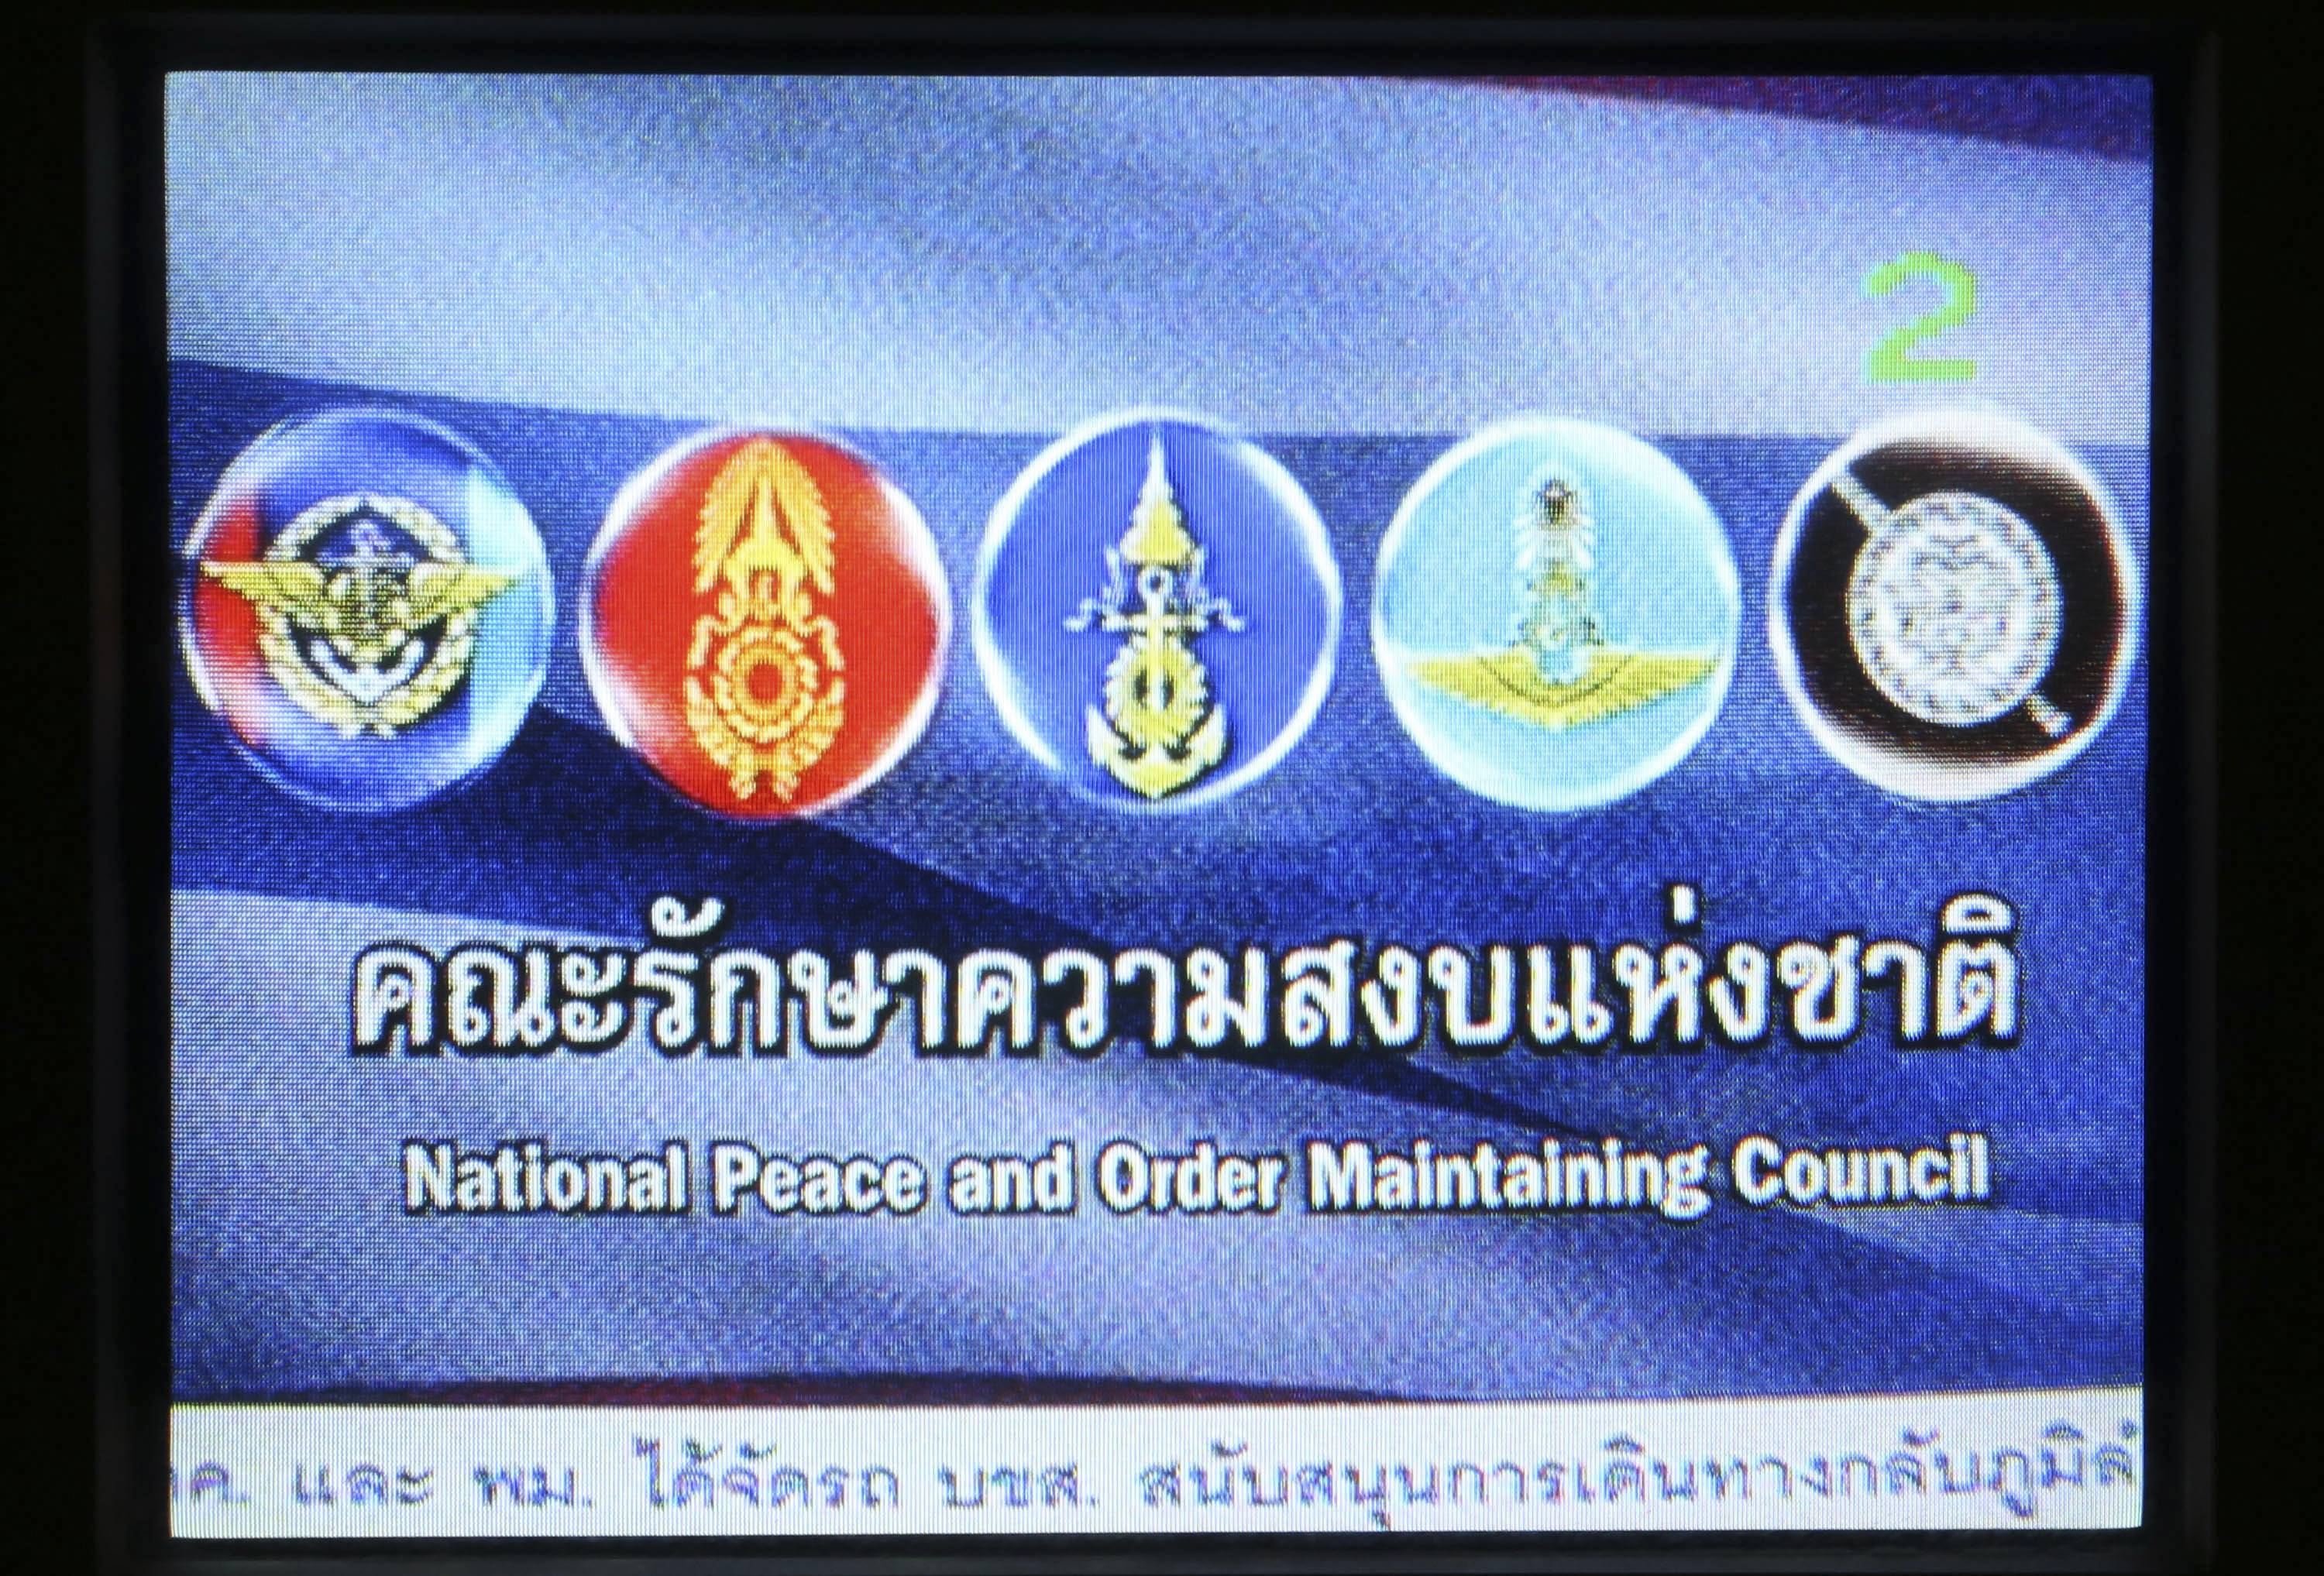 Thailand's junta has commandeered every TV channel for round-the-clock broadcasts of dour announcements and patriotic hymns backed by this blue screen with military crests. The public's verdict: DJ, please change the soundtrack.